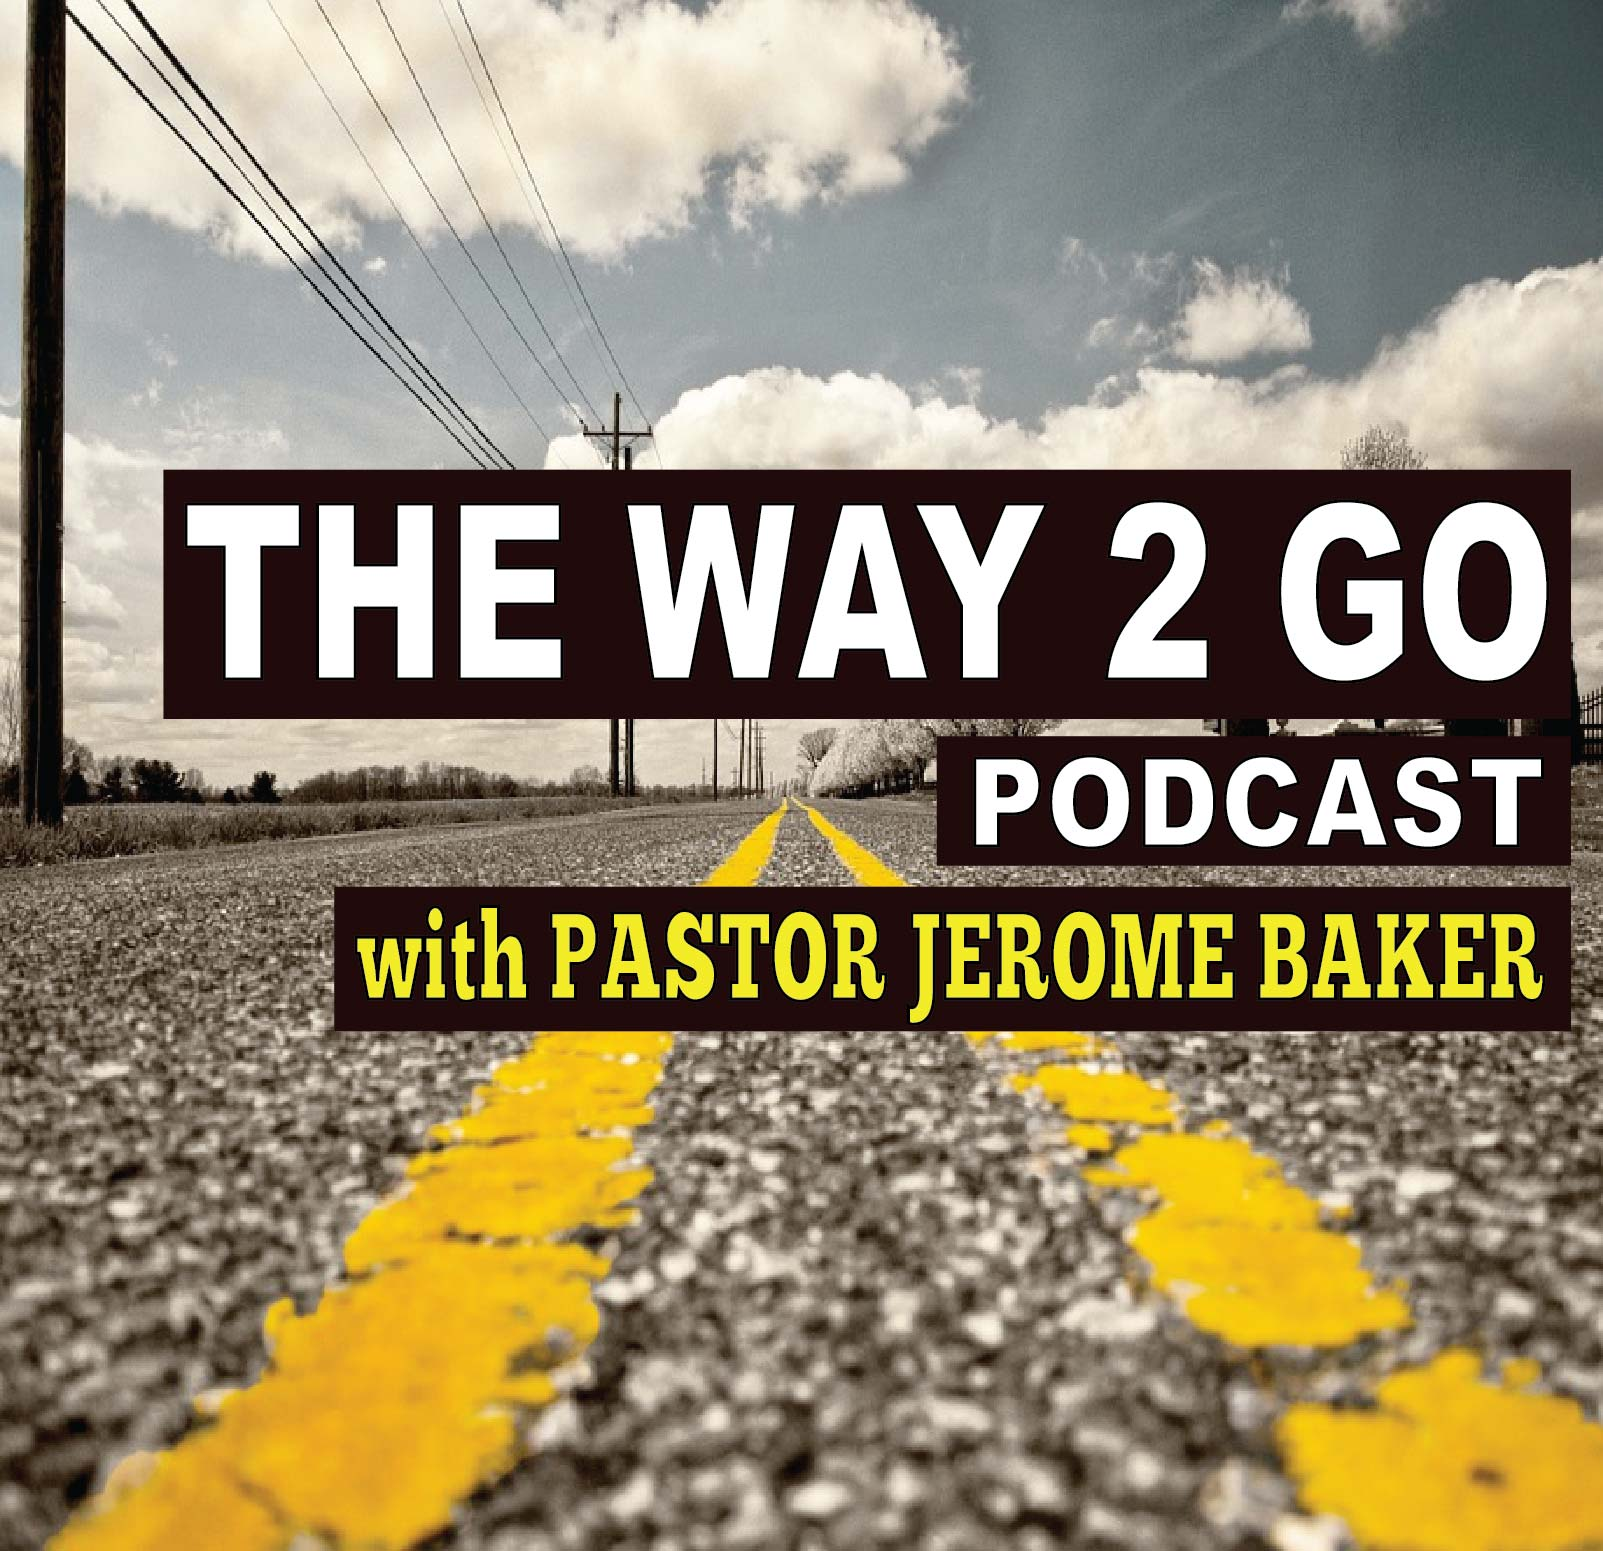 The Way 2 Go Podcast